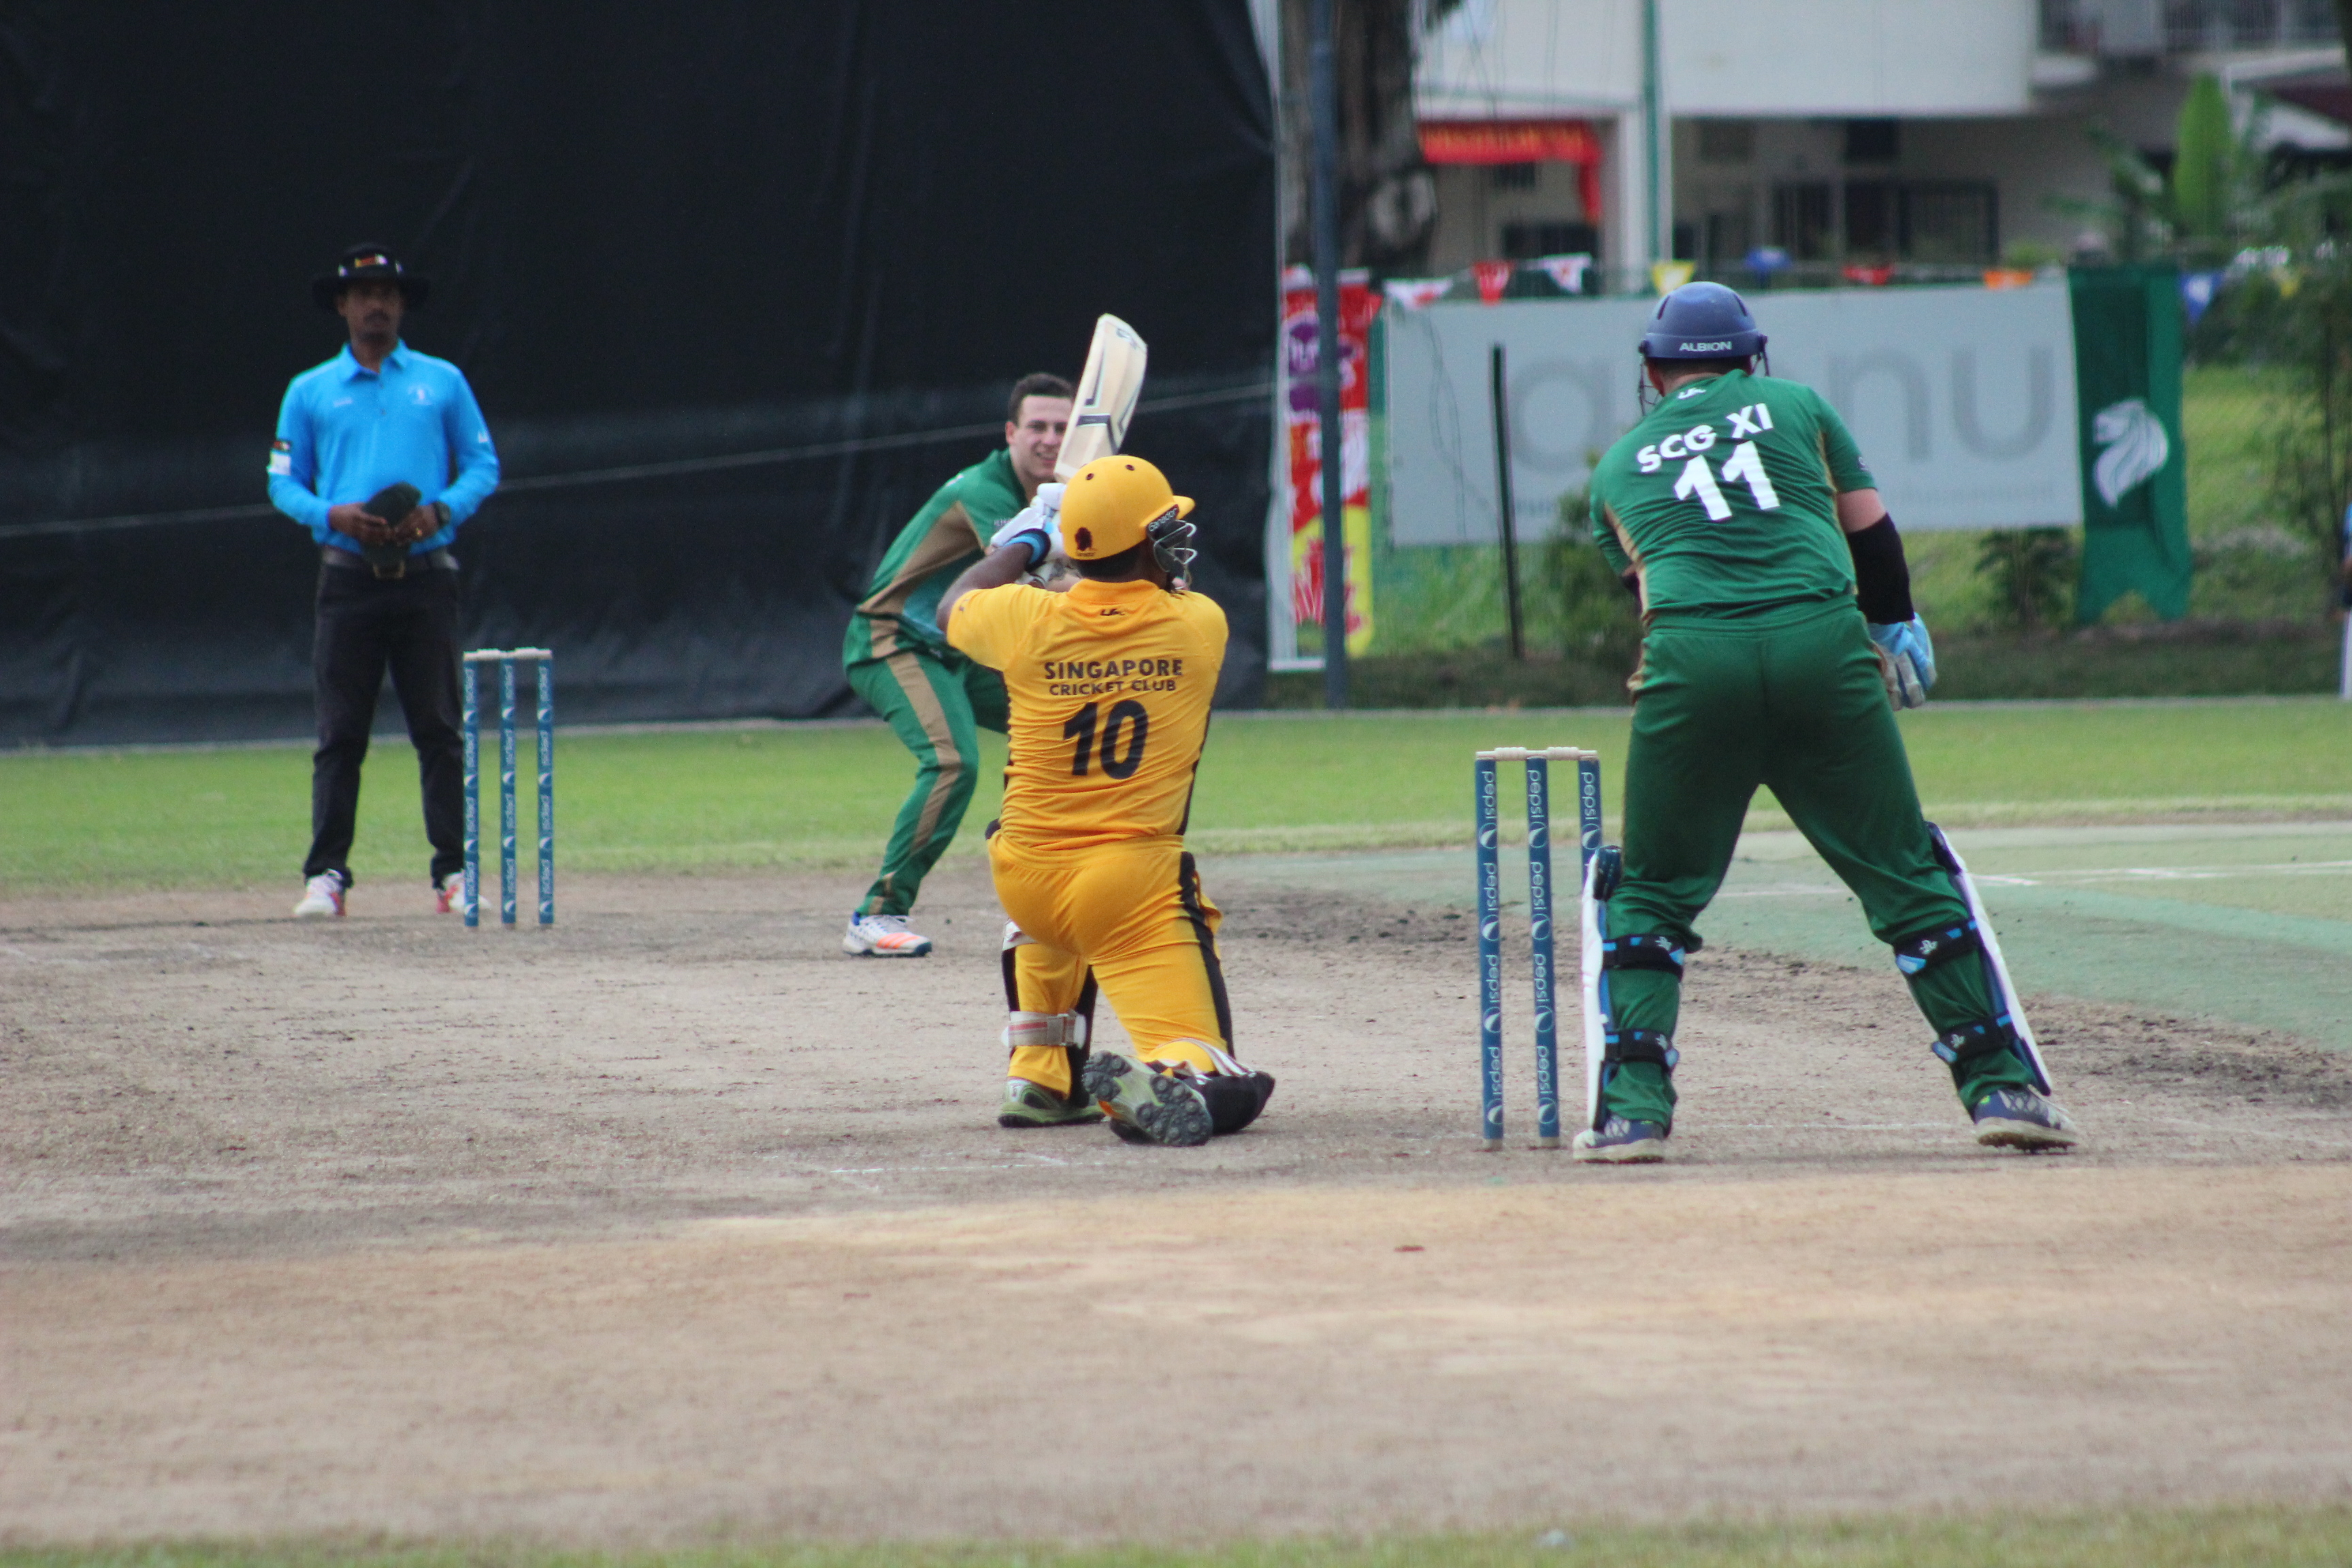 SCC and SCG players in action at the Indian Association Ground.